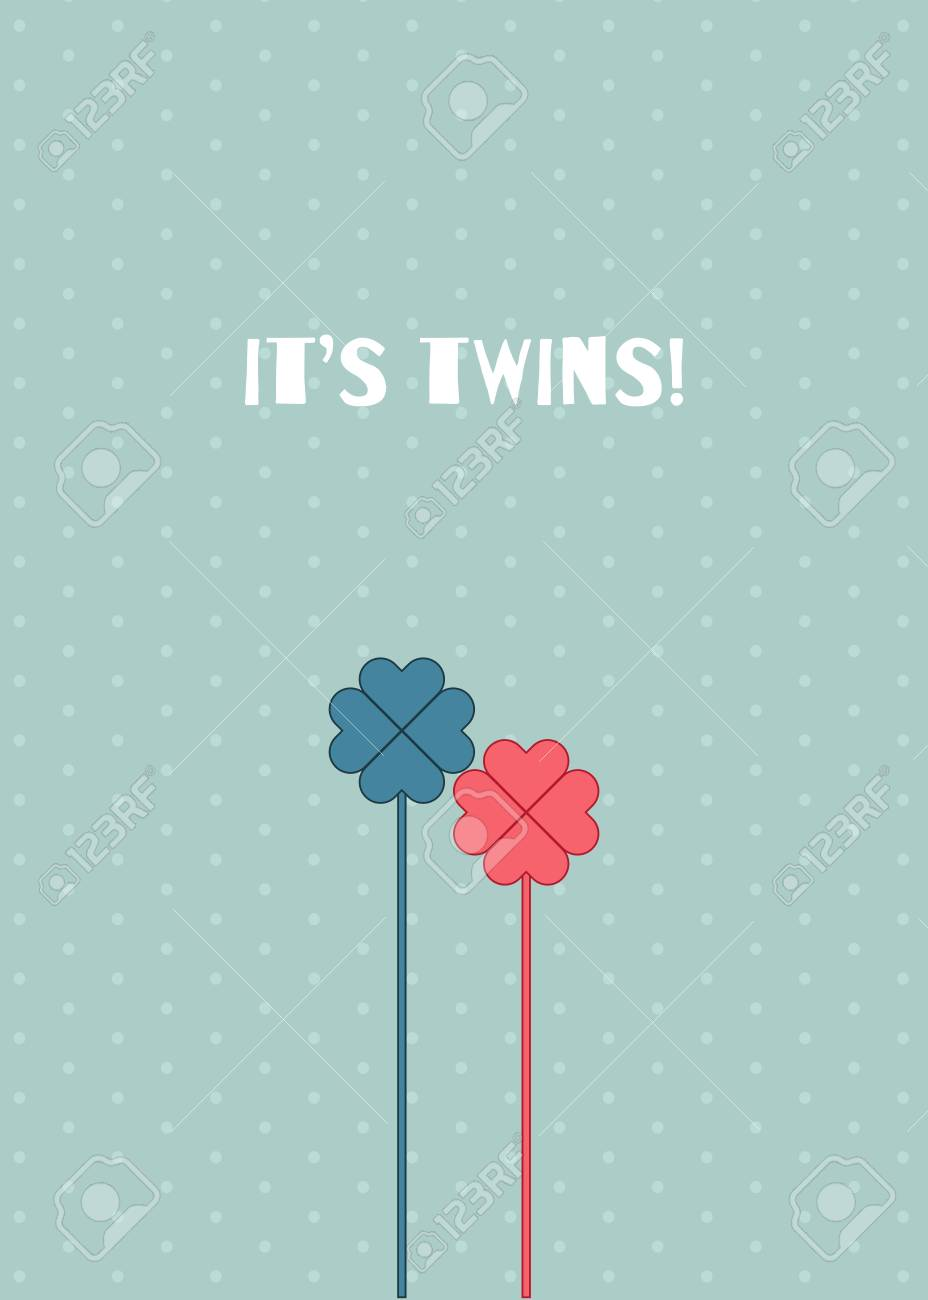 It S Twins Baby Shower Card A Boy And A Girl Royalty Free Cliparts Vectors And Stock Illustration Image 118200436